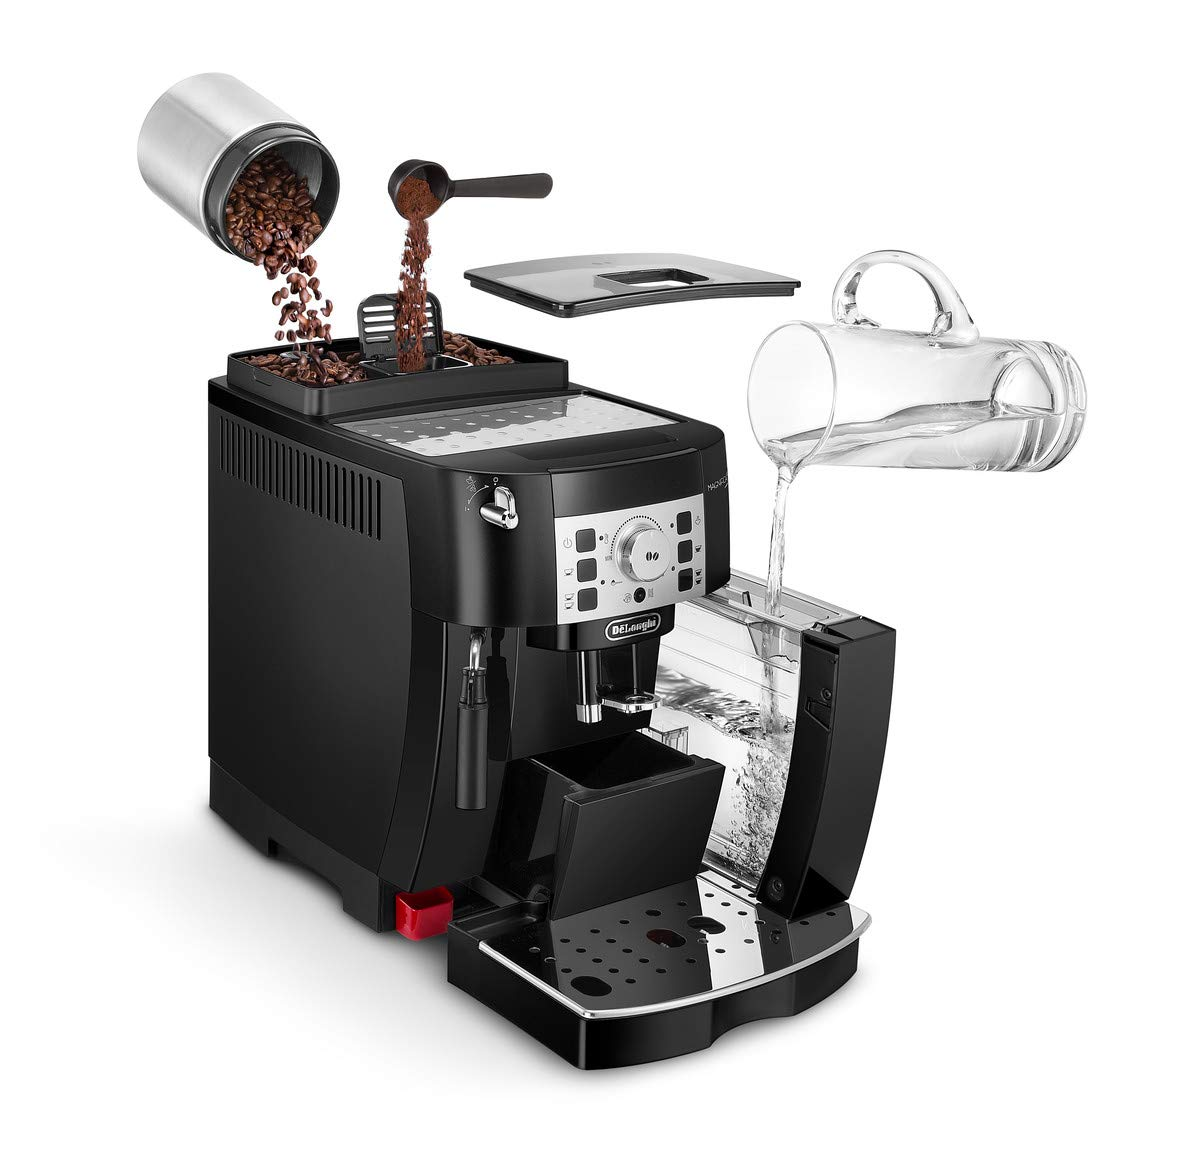 DeLonghi-Fully-Automatic-Bean-to-Cup-Coffee-Machine-ECAM22110B-220-W